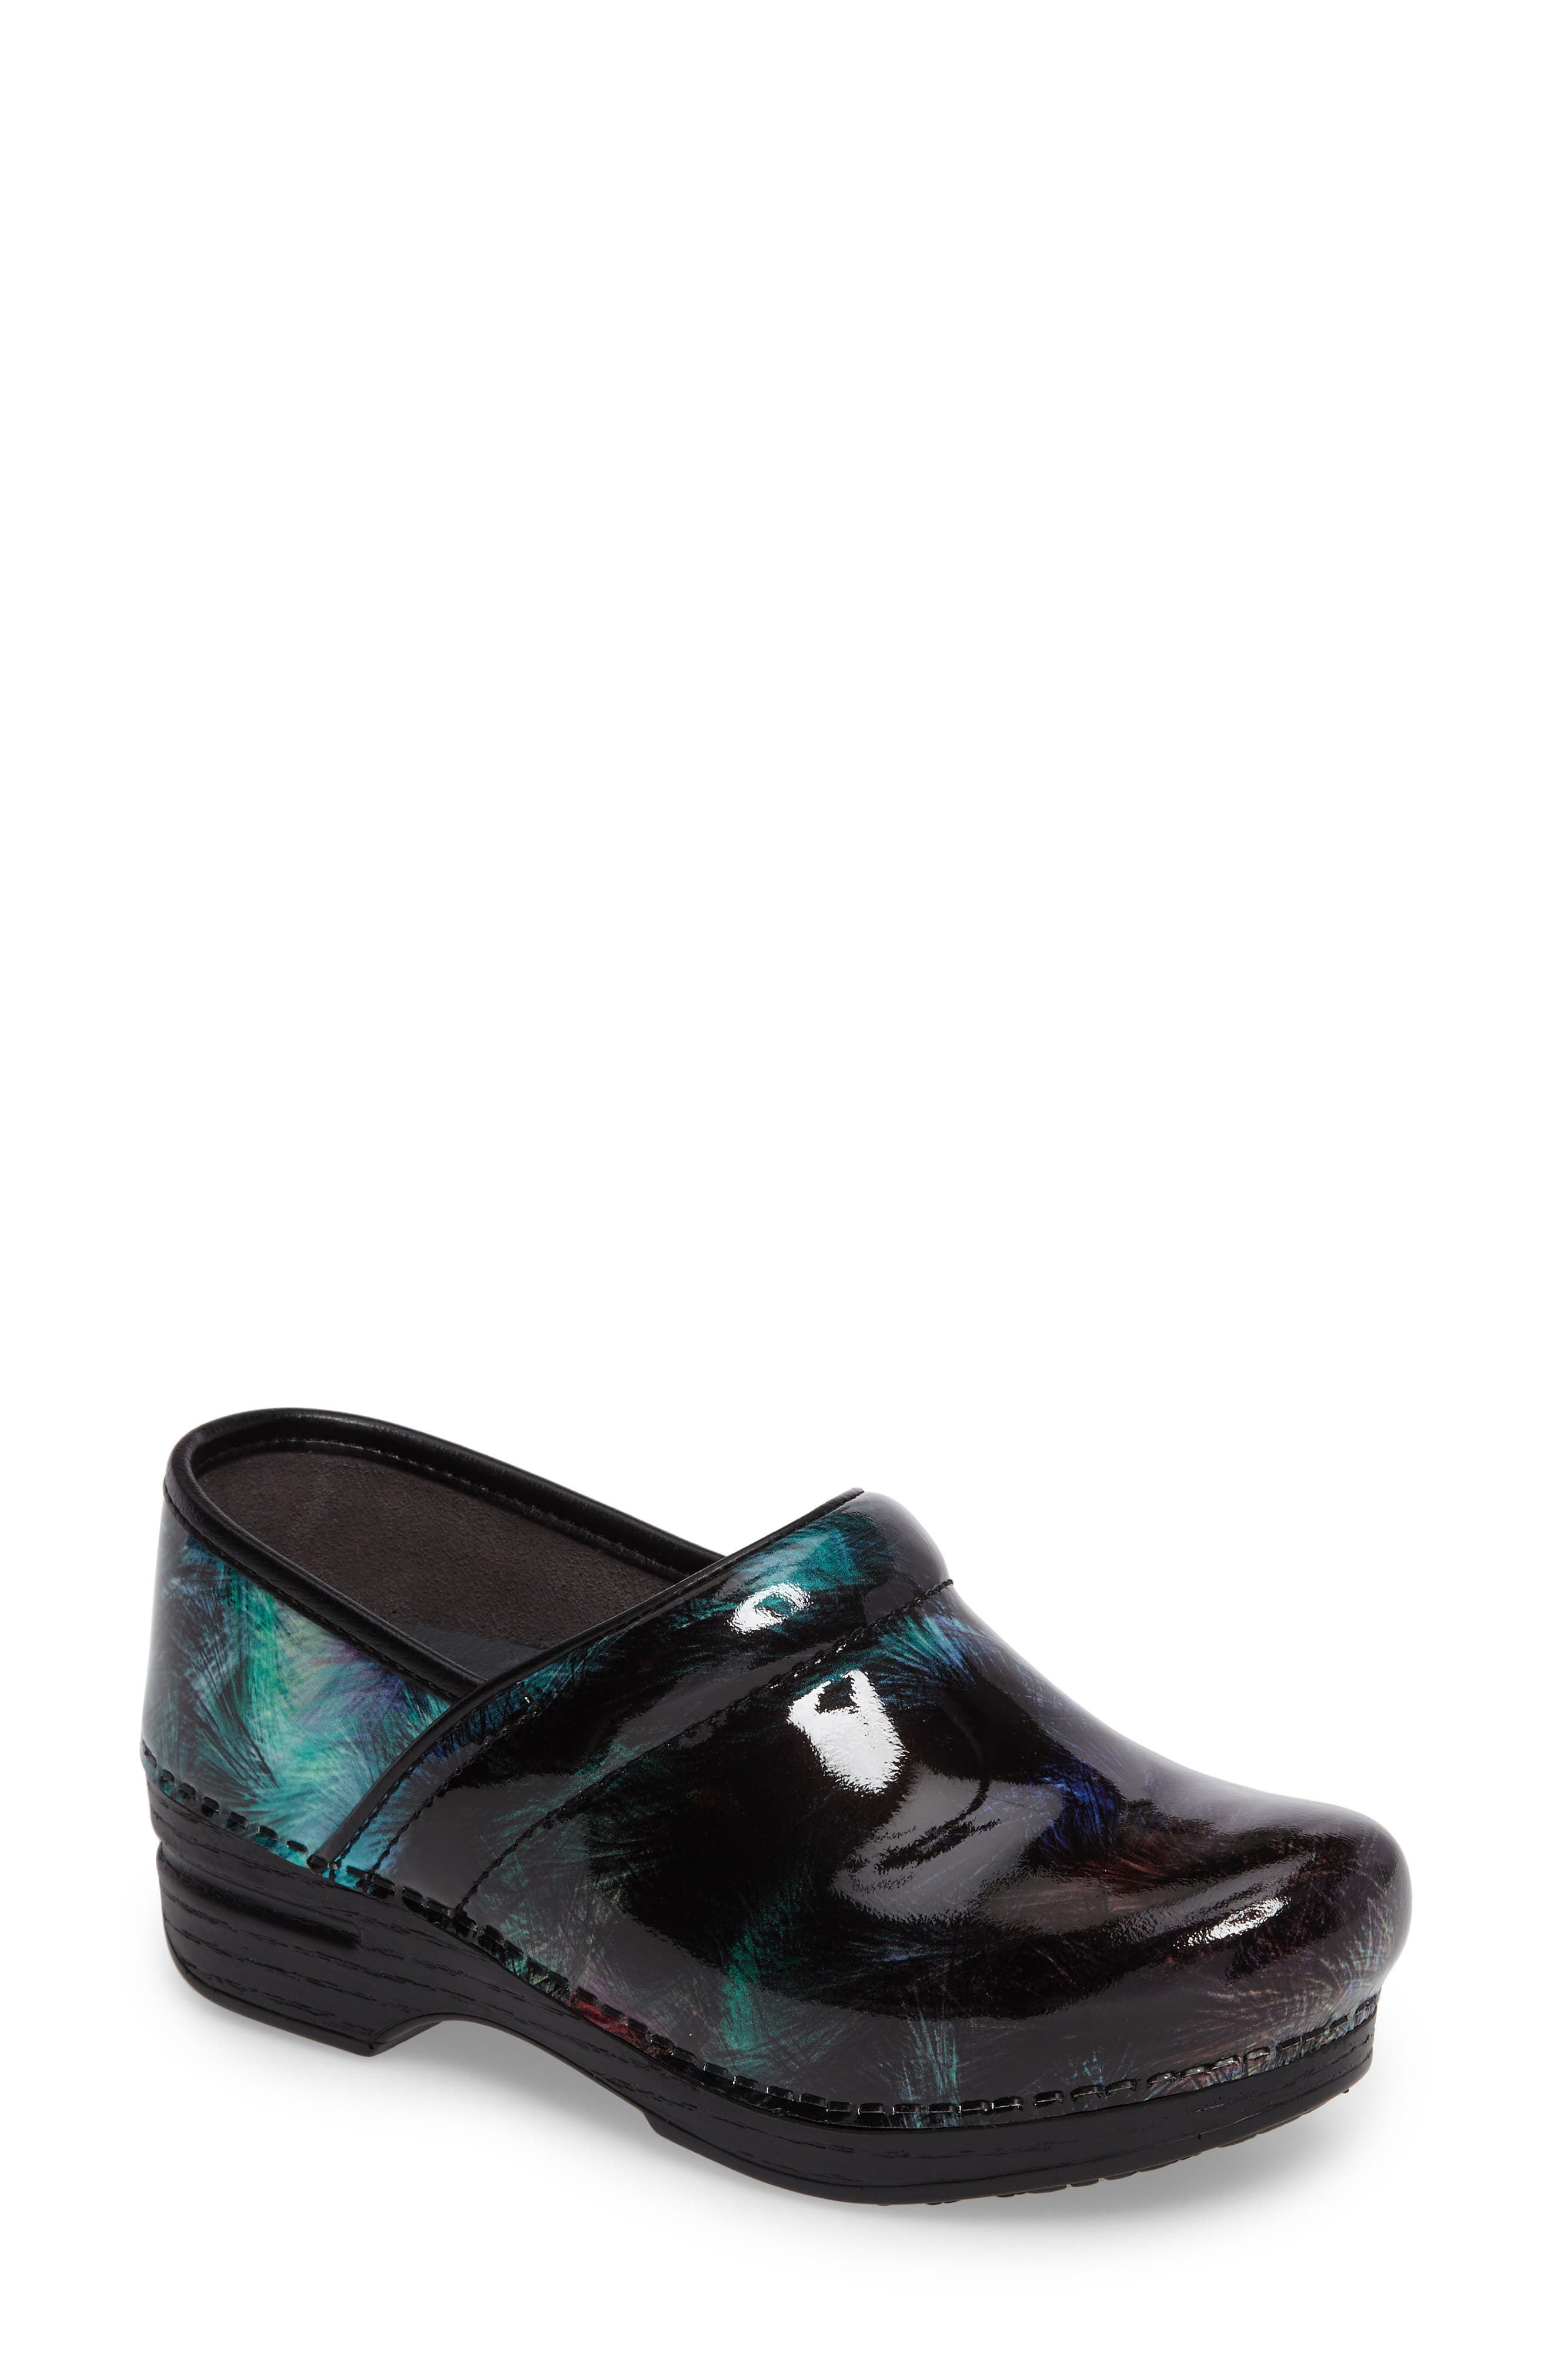 'Pro XP' Patent Leather Clog,                         Main,                         color, Brush Patent Leather